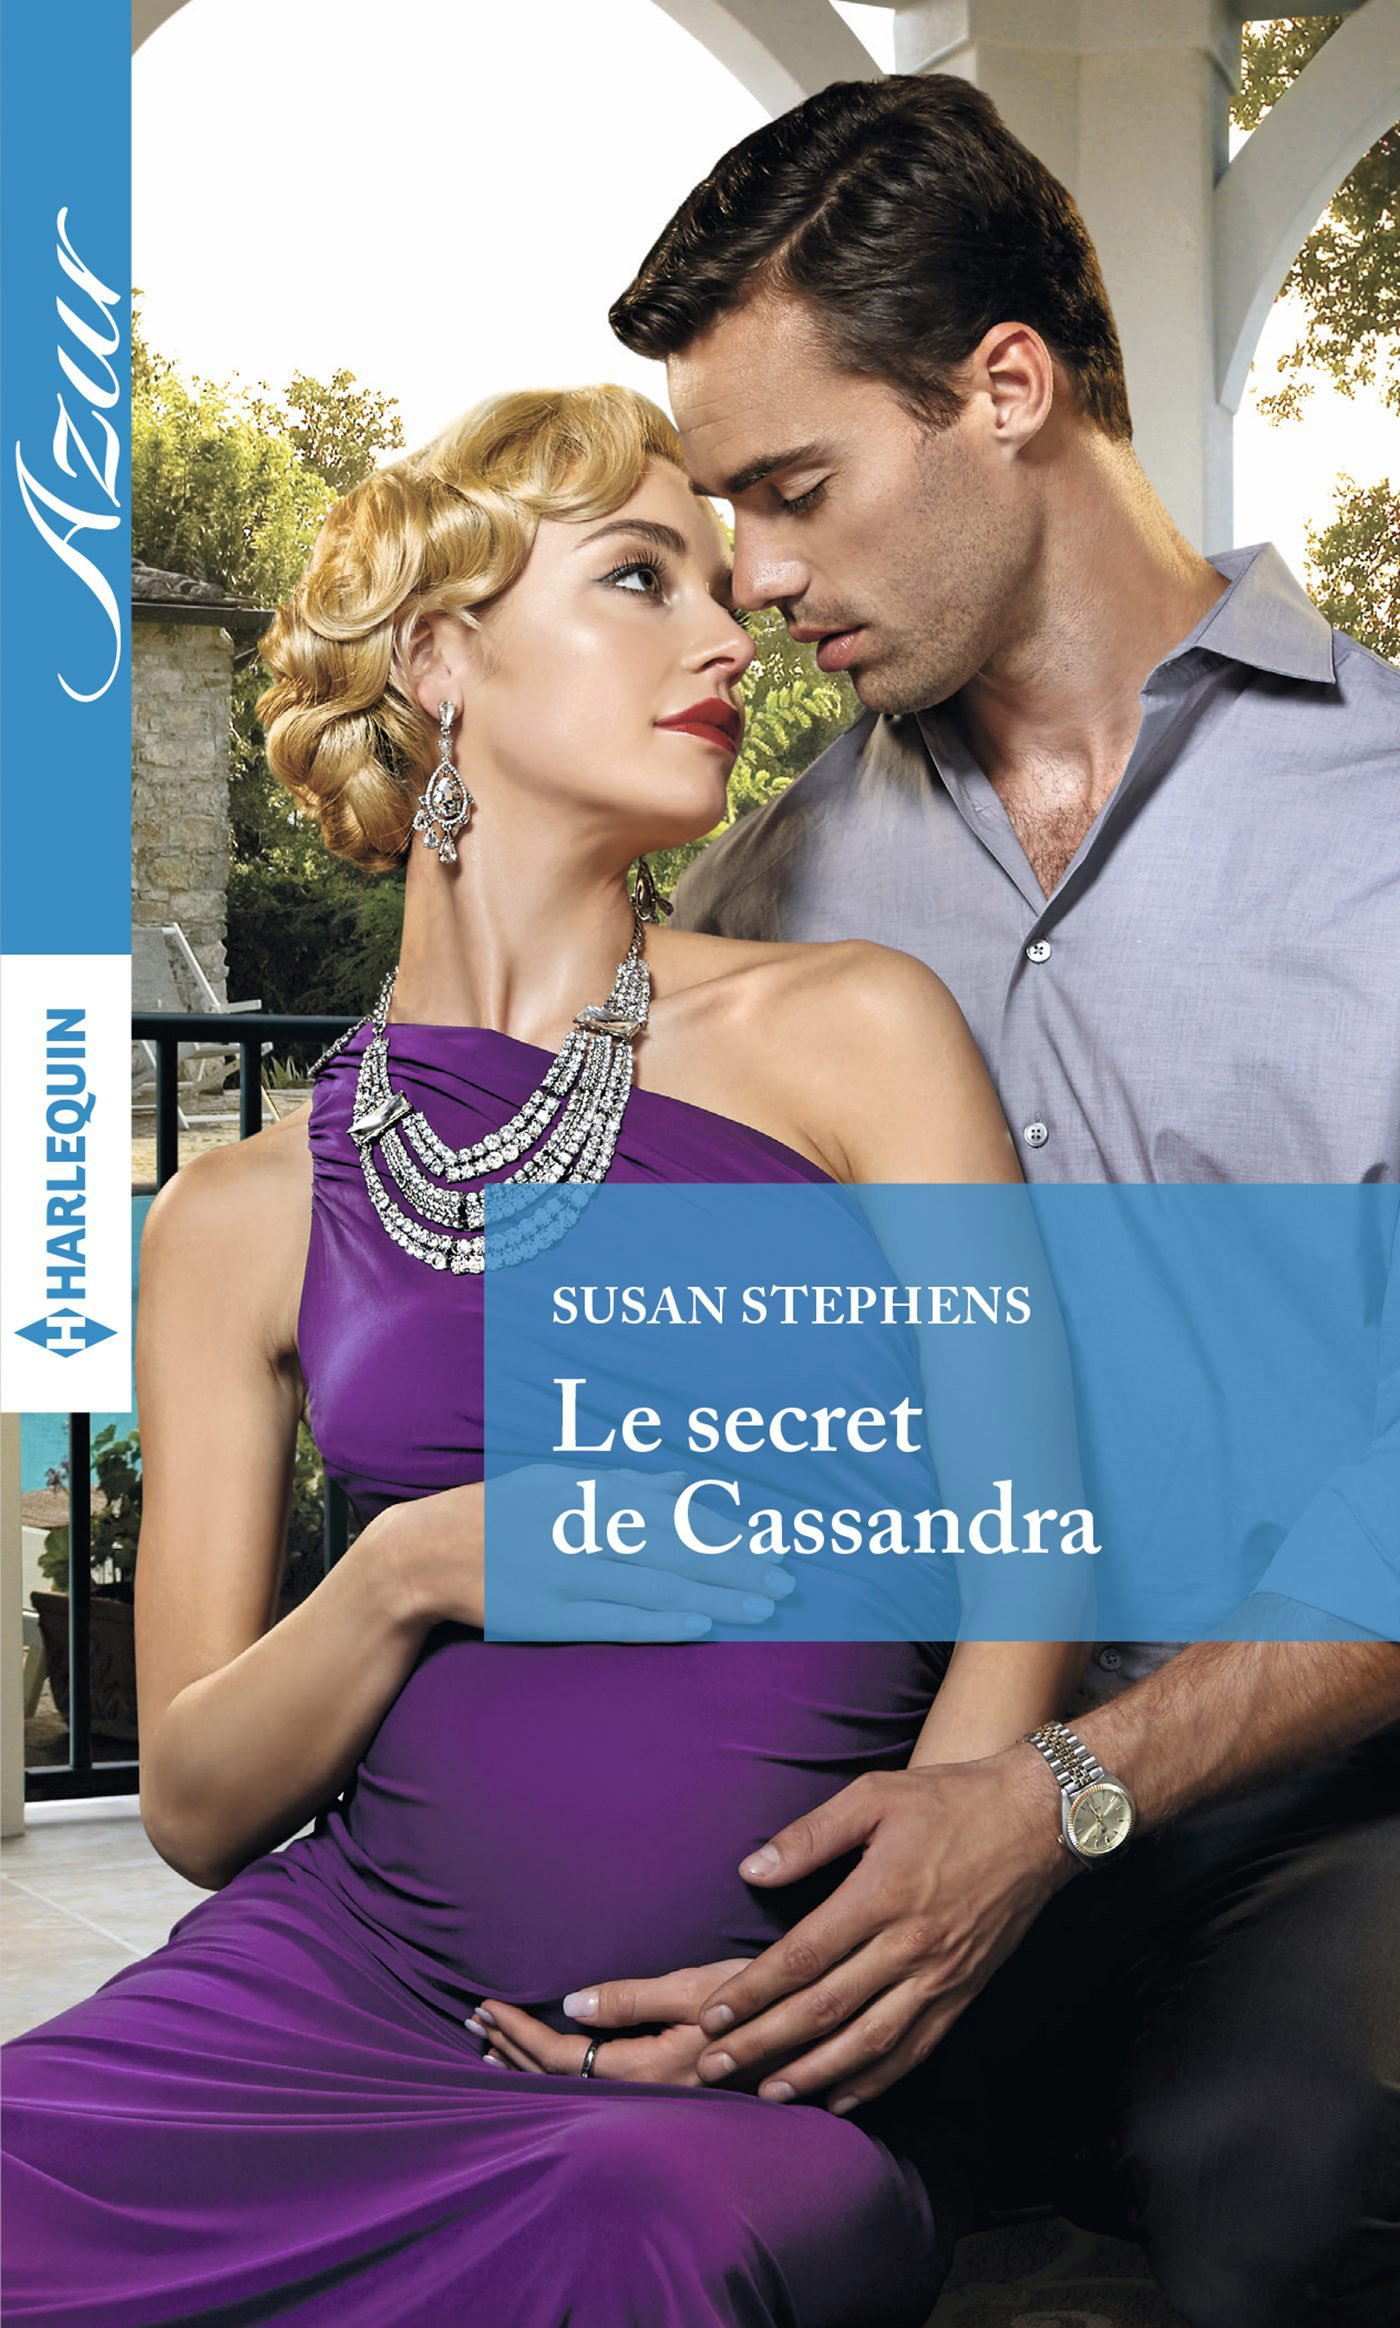 Couverture : Susan Stephens, Le secret de Cassandra, Harlequin